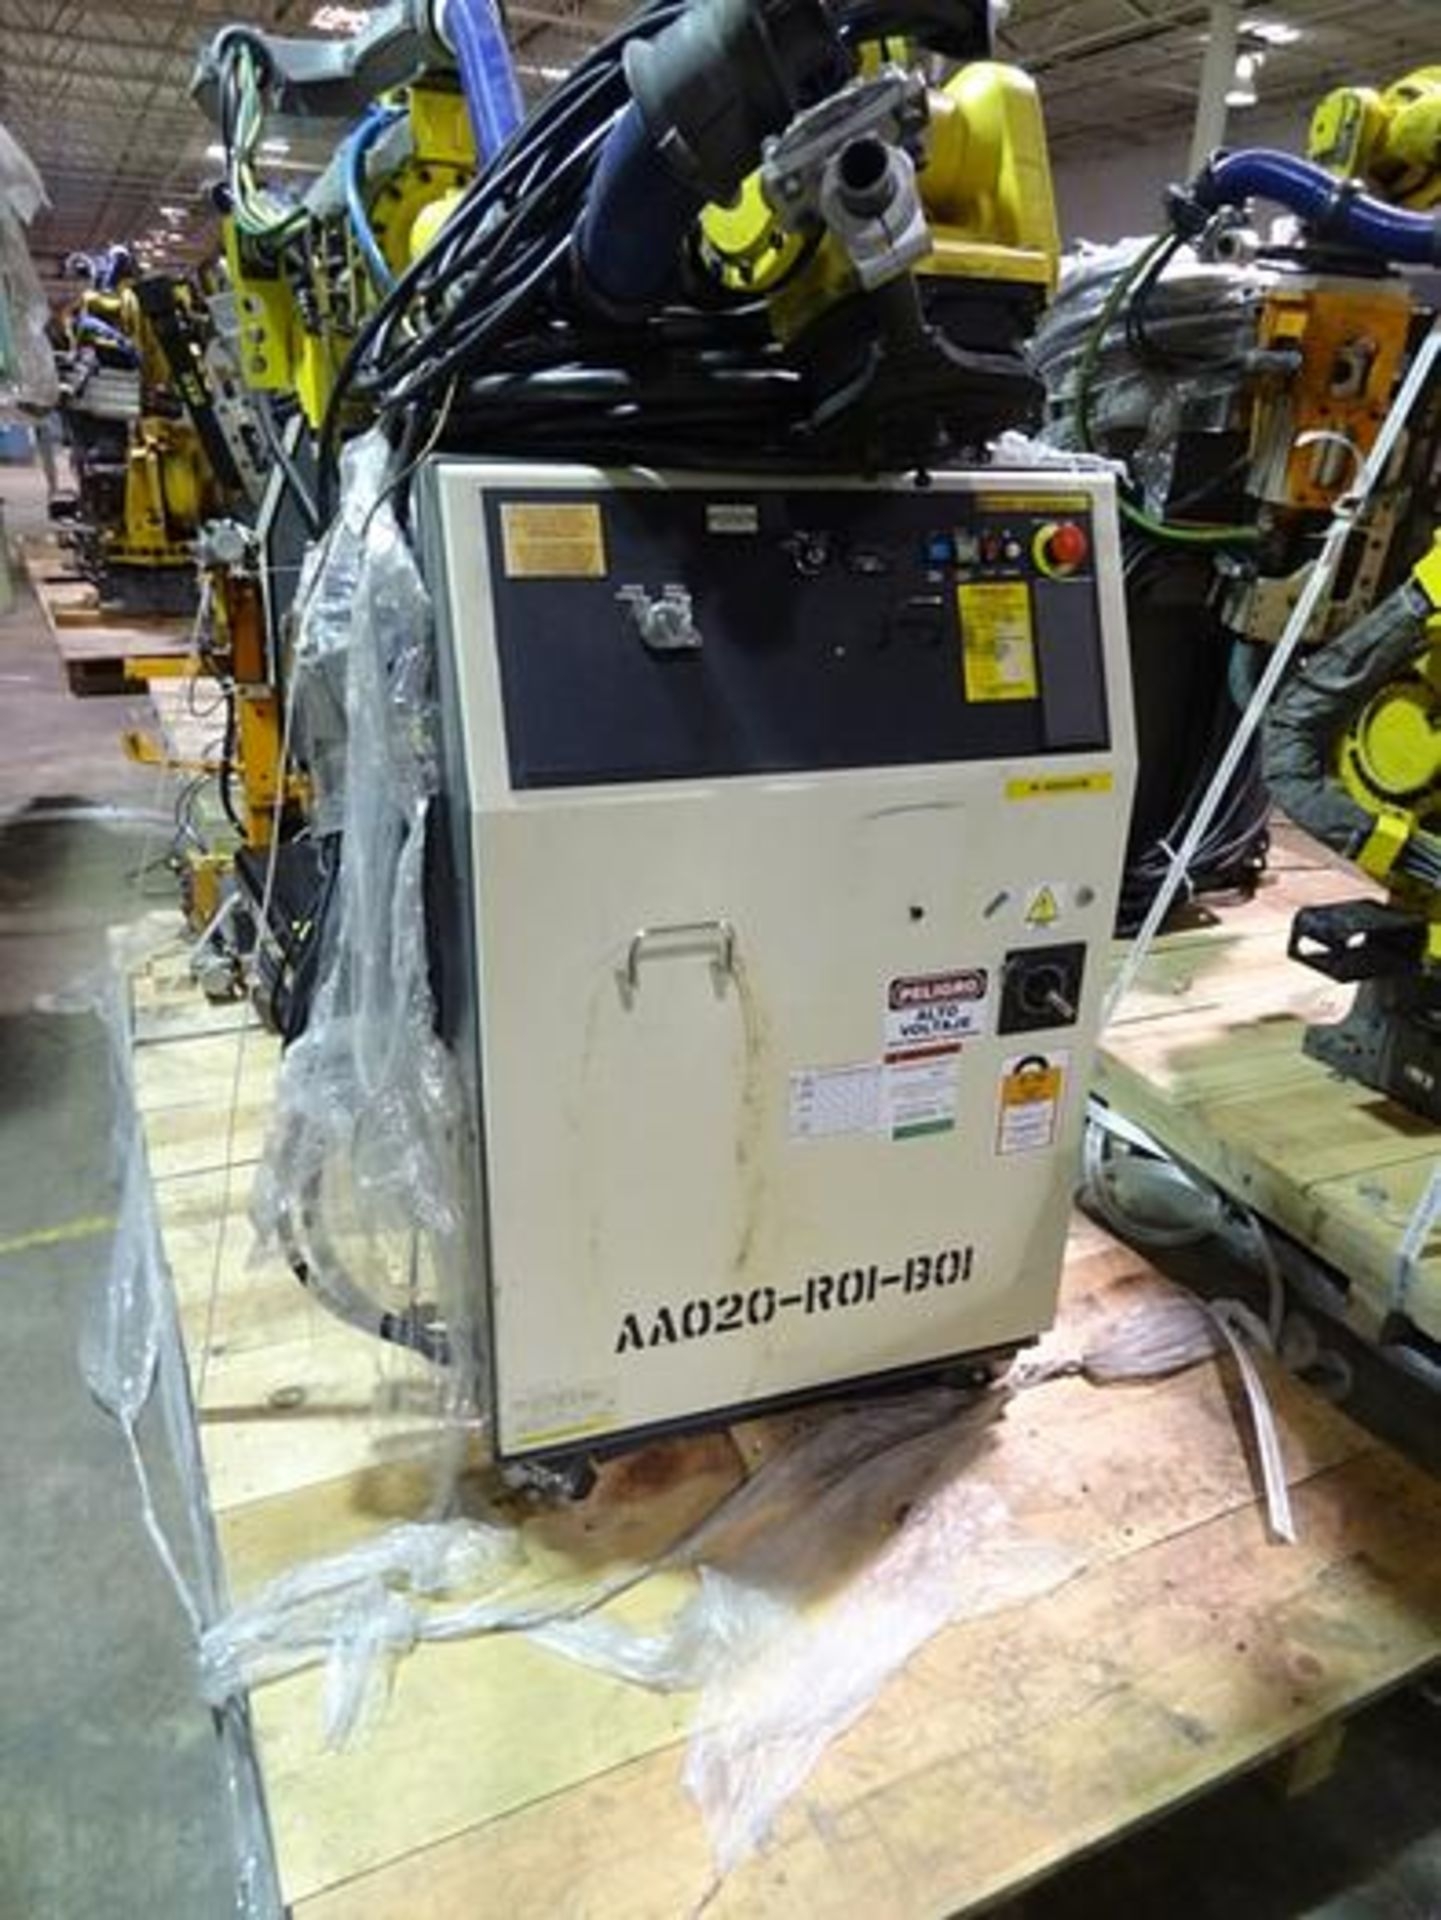 FANUC ROBOT R2000iB/185L WITH R30iA CONTROLLER, TEACH & CABLES, YEAR 2013, SN 132164 - Image 5 of 6